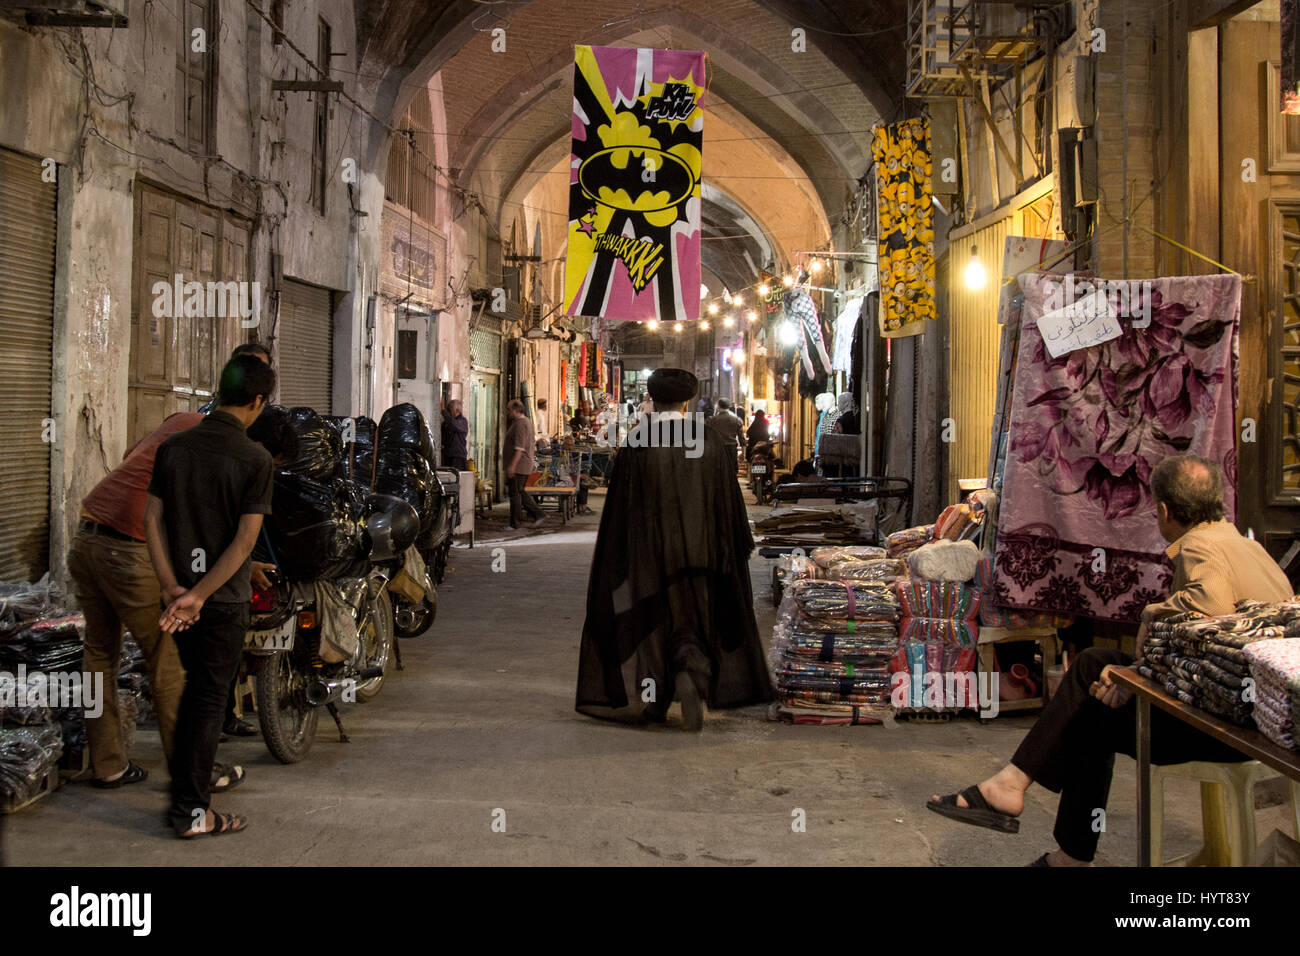 ISFAHAN, IRAN - AUGUST 20, 2016: Imam passing under a Batman logo in Isfahan bazaar  Picture of an Iranian imam - Stock Image